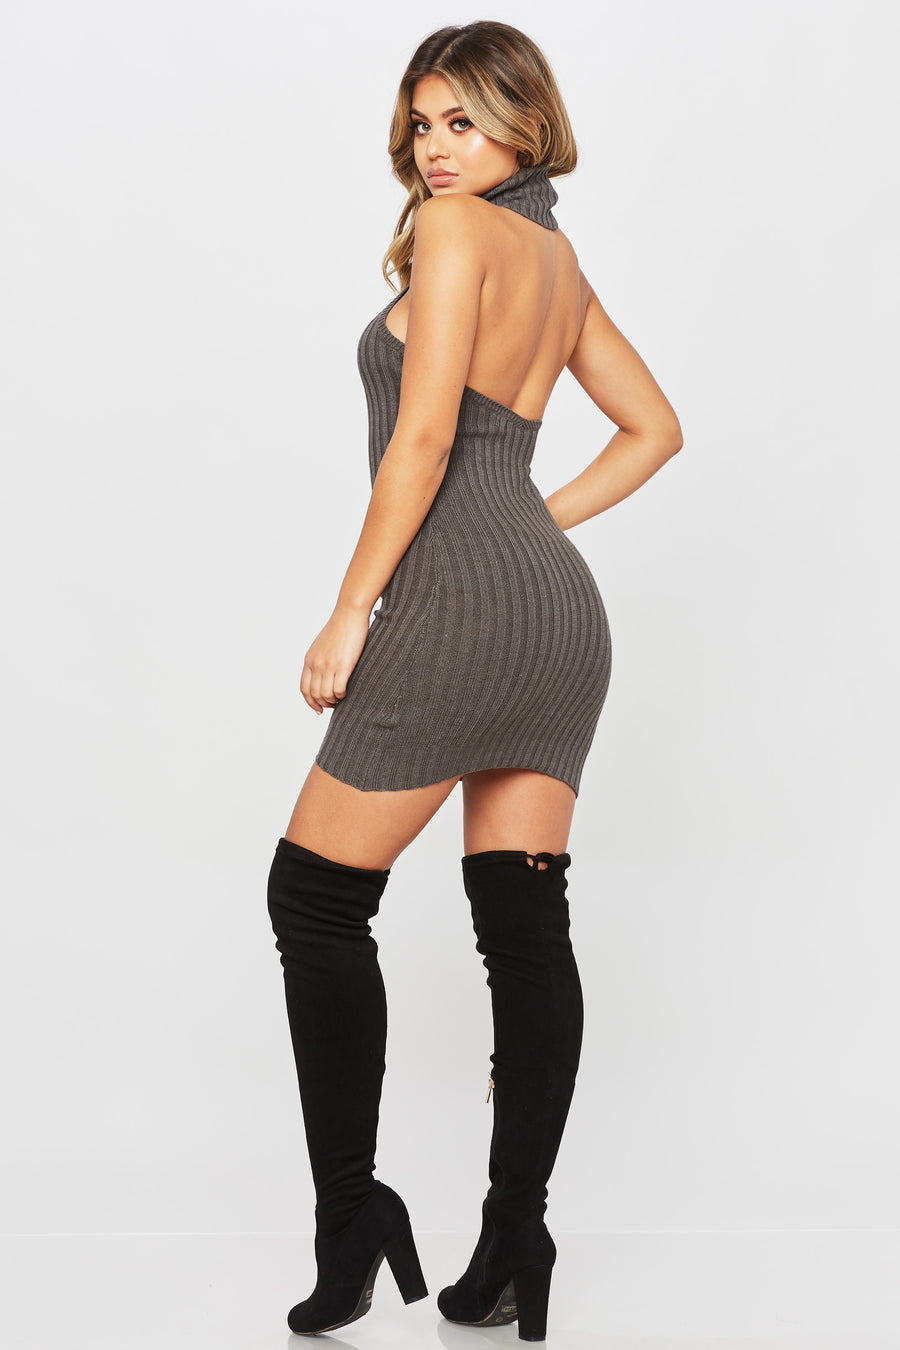 Holidaze Dress - HoneyBum